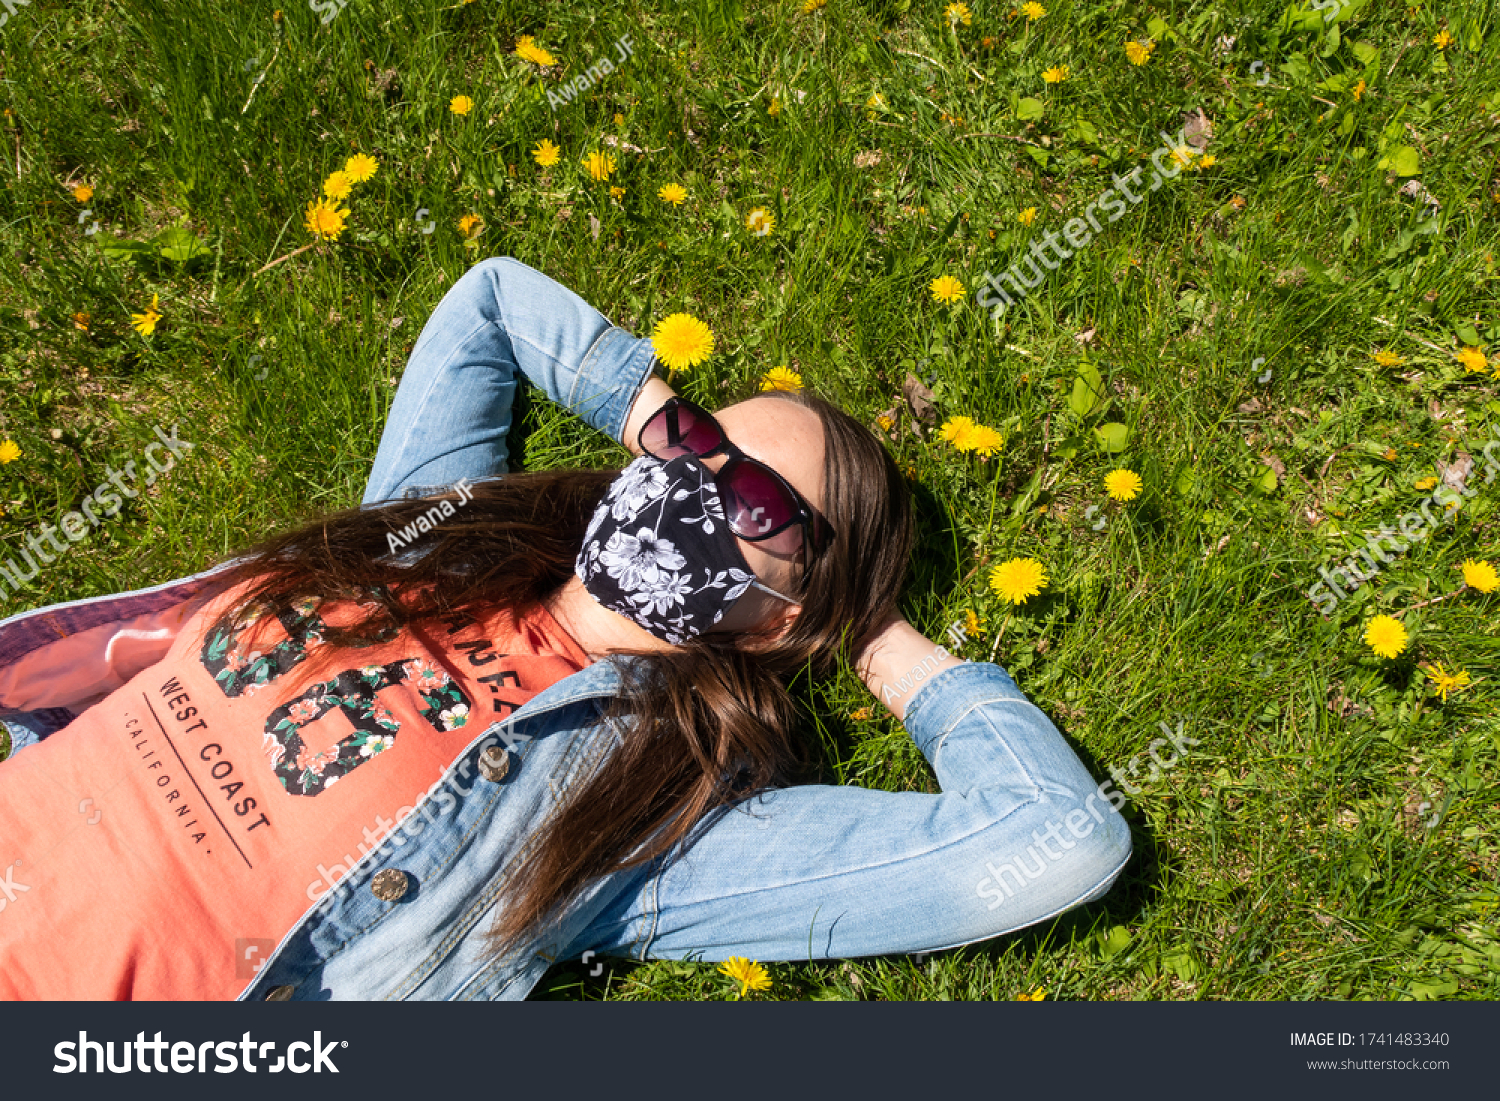 stock-photo-top-view-of-a-young-woman-we